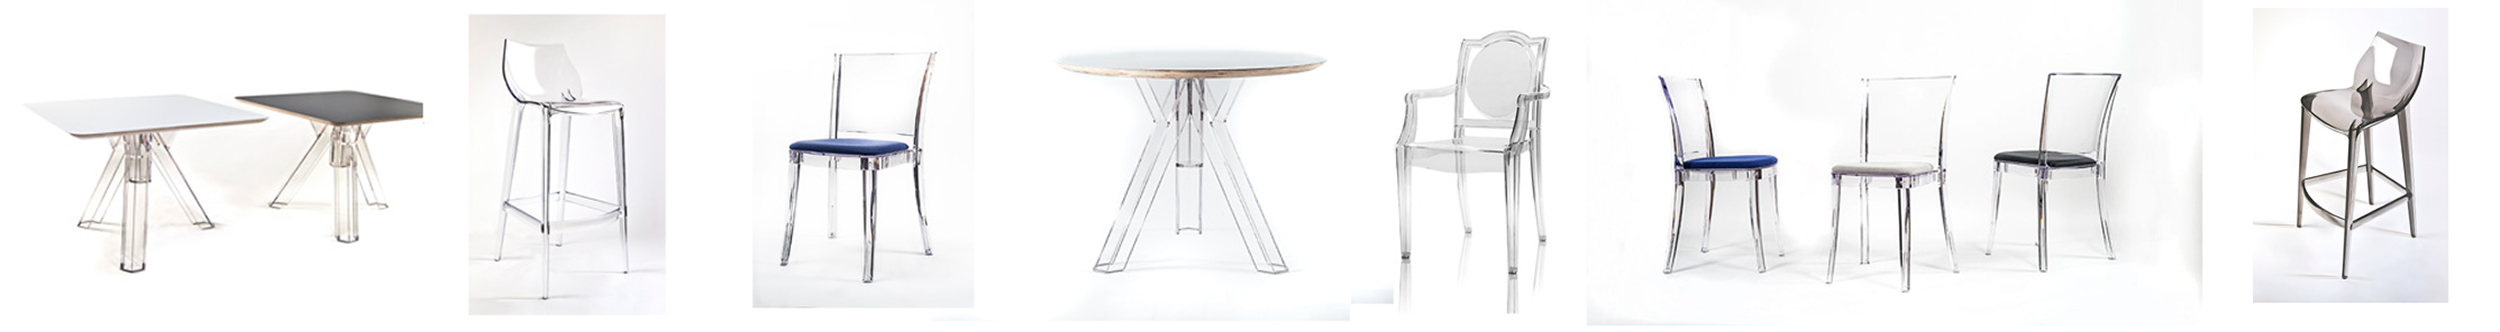 Bellelli Design - Kitchen Stools